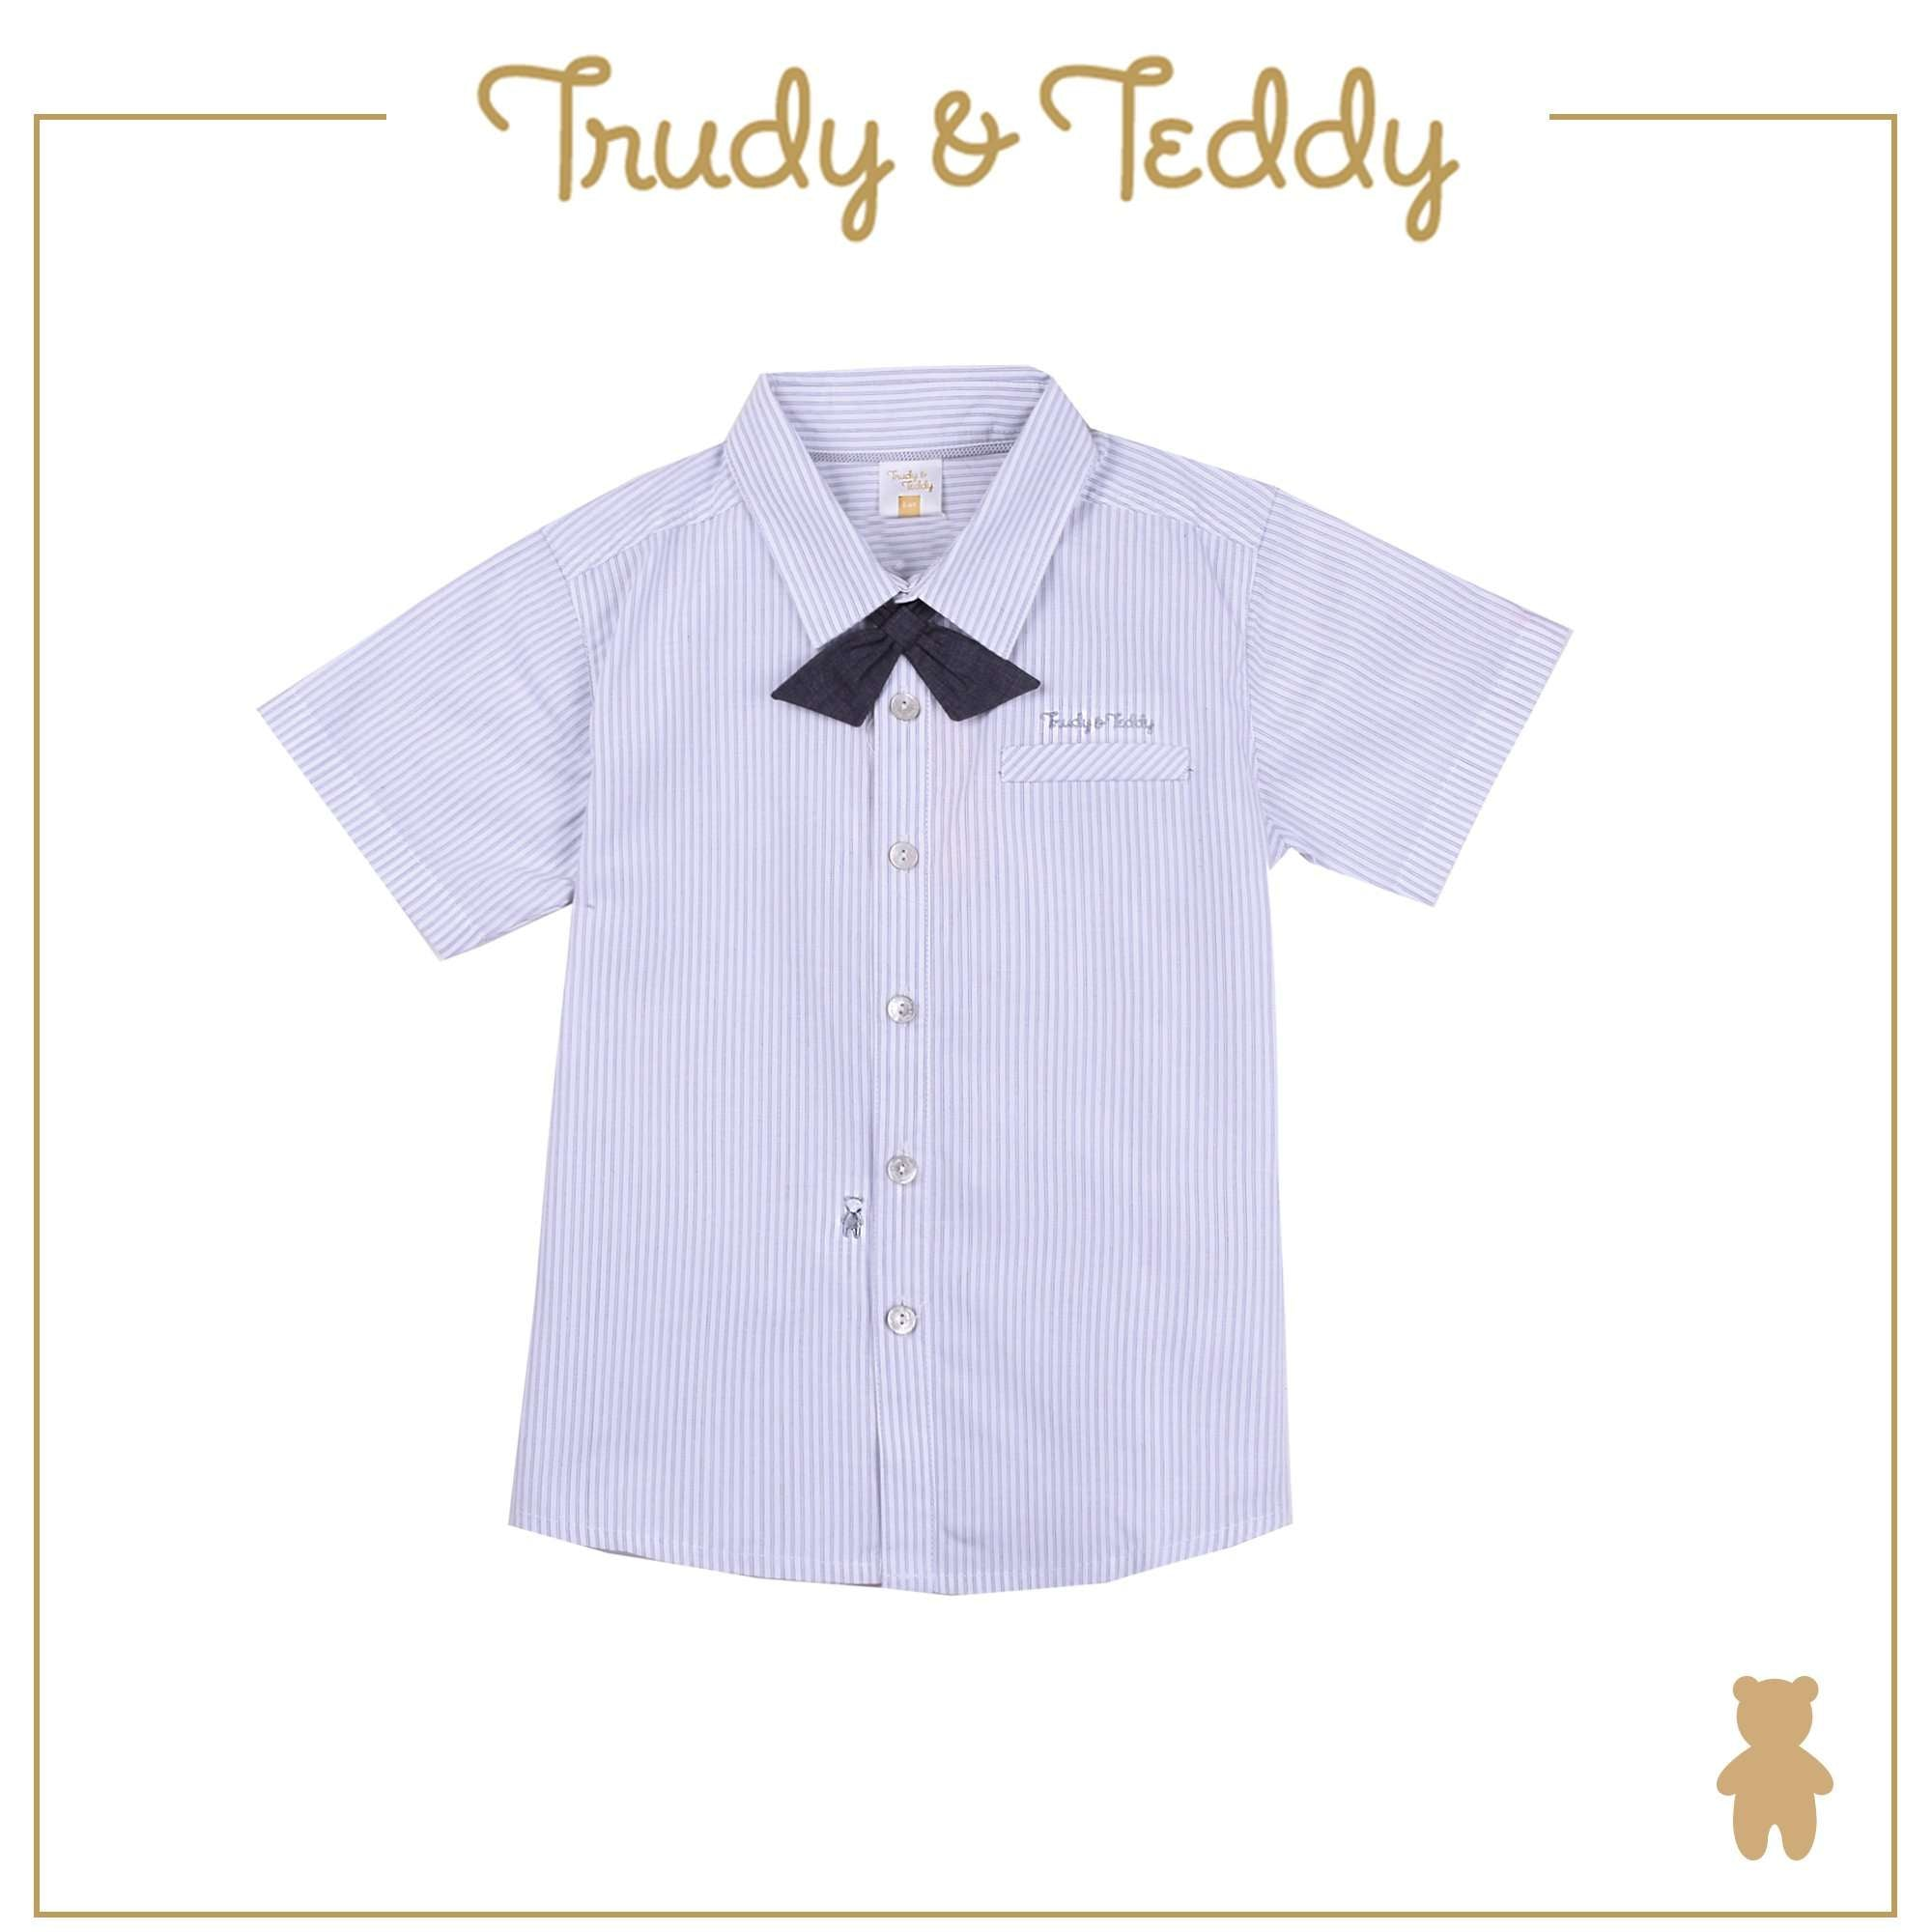 Trudy & Teddy Toddler Boy Short Sleeve Shirt - Blue T922002-1450-L5 : Buy Trudy & Teddy online at CMG.MY